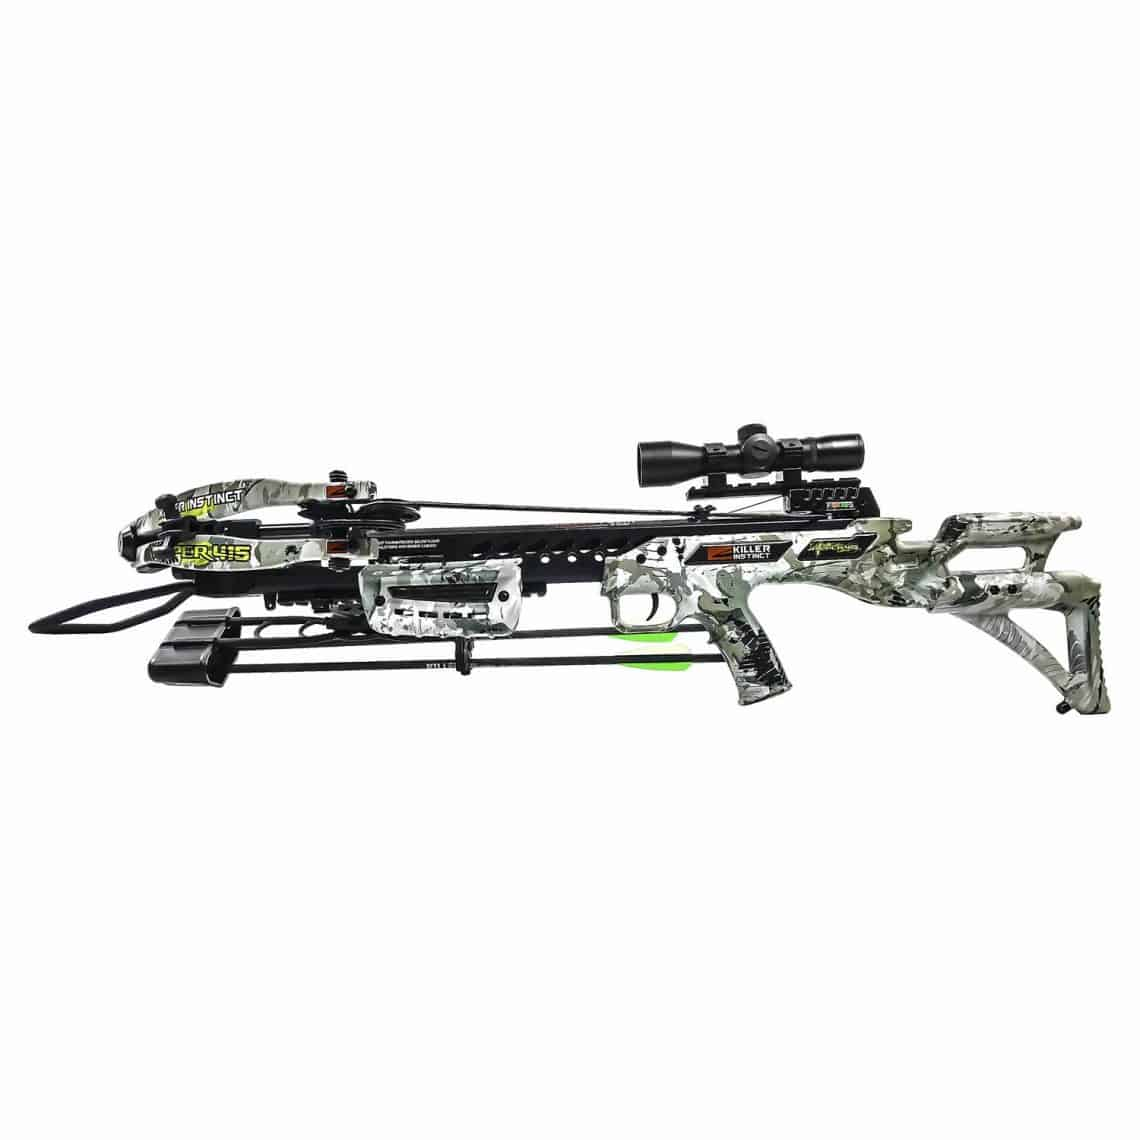 KILLER INSTINCT RIPPER 415 CROSSBOW WITH 3 FREE KILLERTECH LUMIX LIGHTED  BOLTS & FREE SHIPPING!